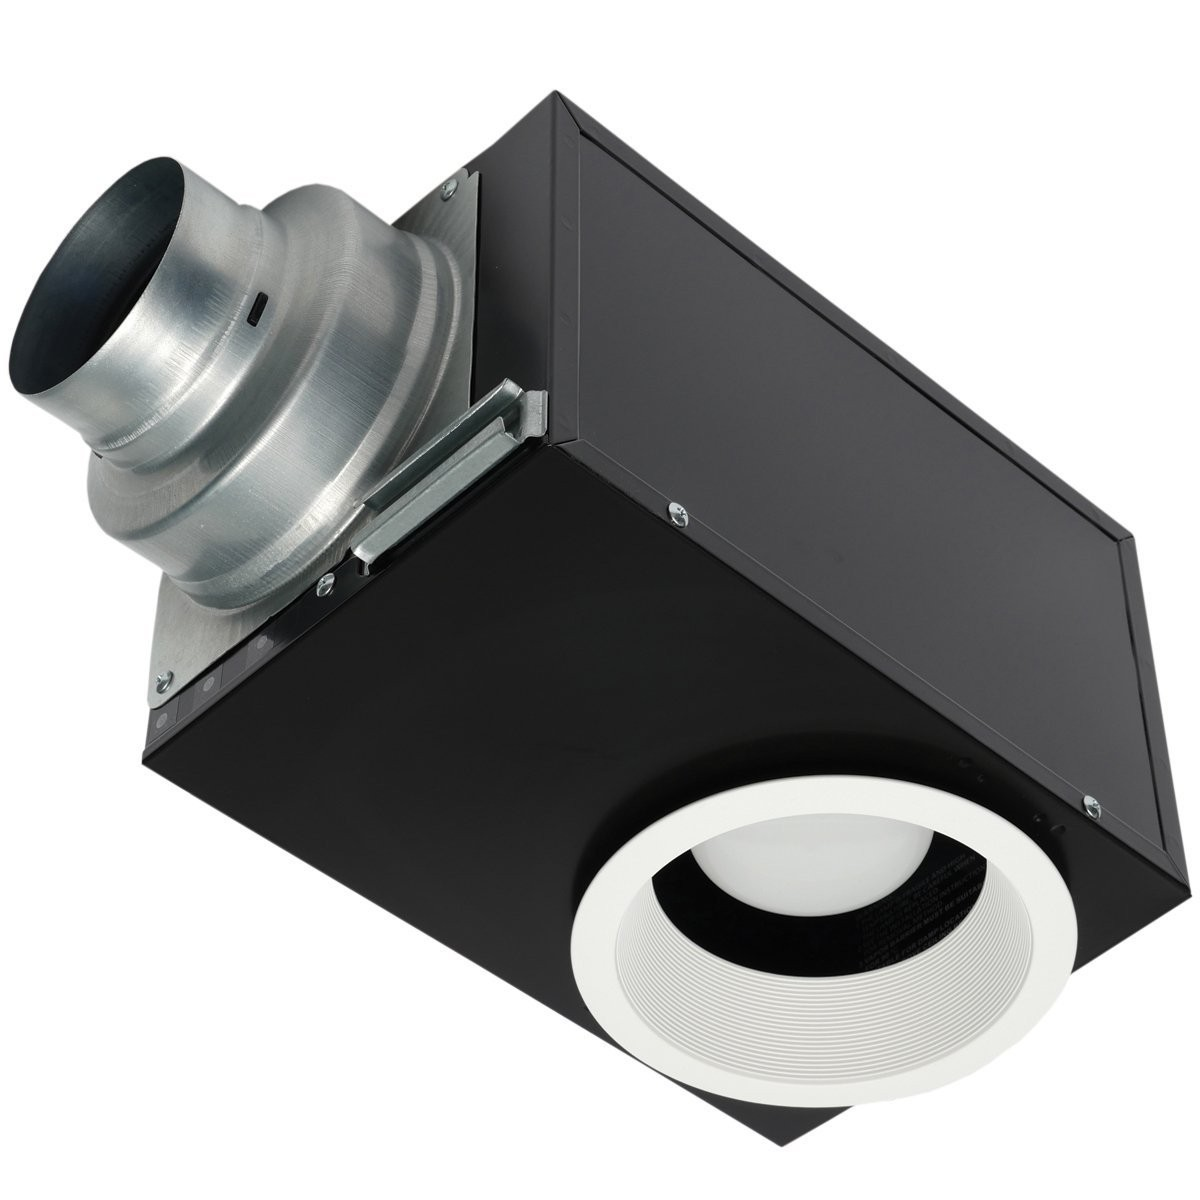 Bathroom fans panasonic - Status In Stockitem Is In Stock And Can Ship The Same Day If Ordered Before 1pm Pst Panasonic Fv 08vre2 Quiet Bath Fans